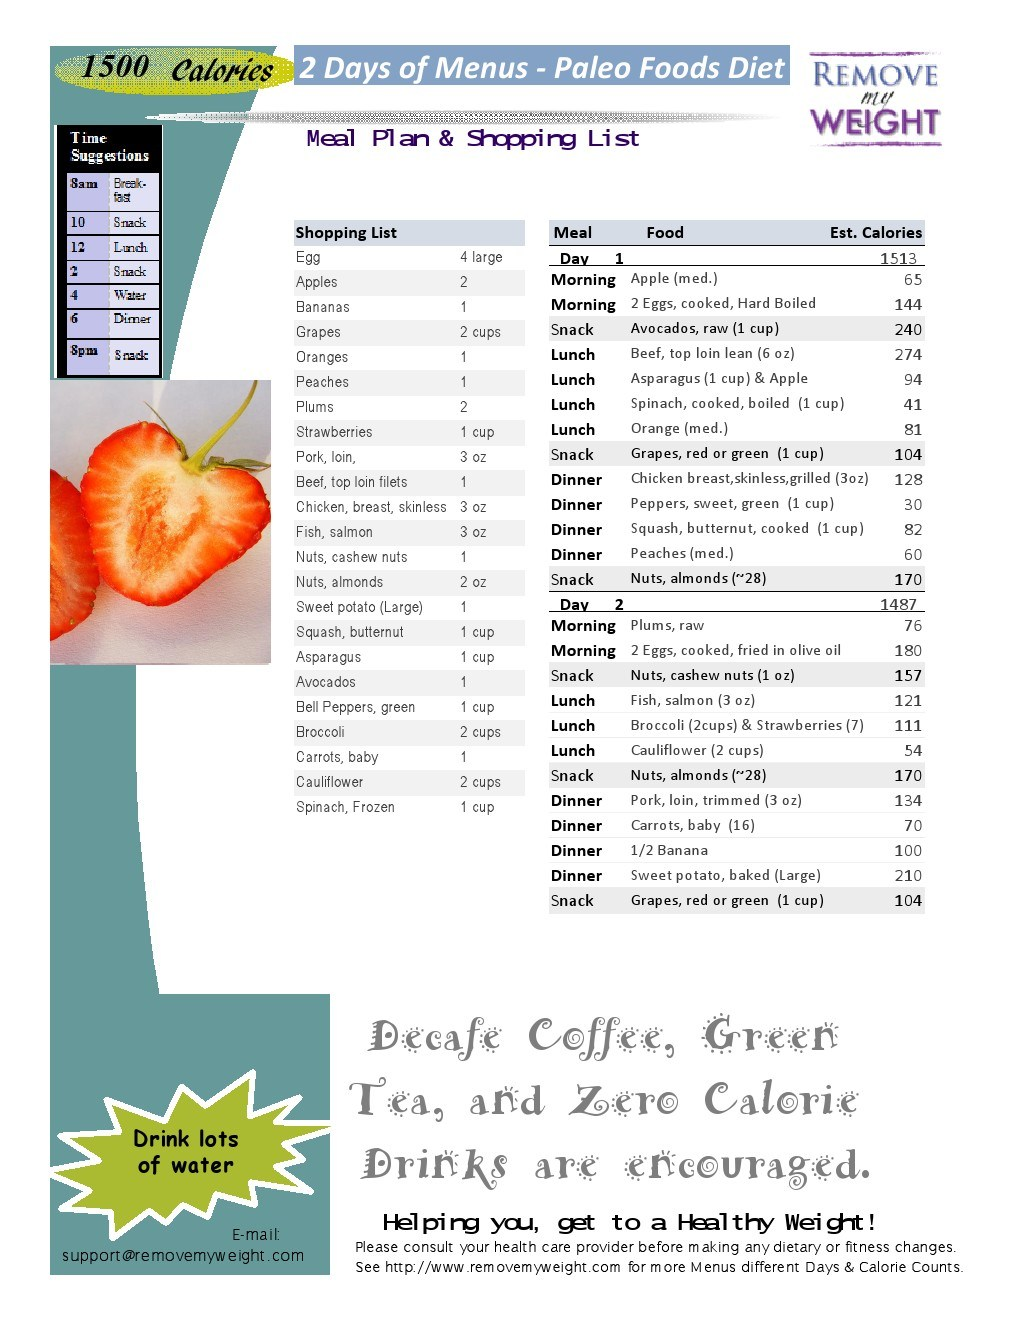 Paleo Diet 2 Day 1500 Calories a Day Meal Plan to Lose ...